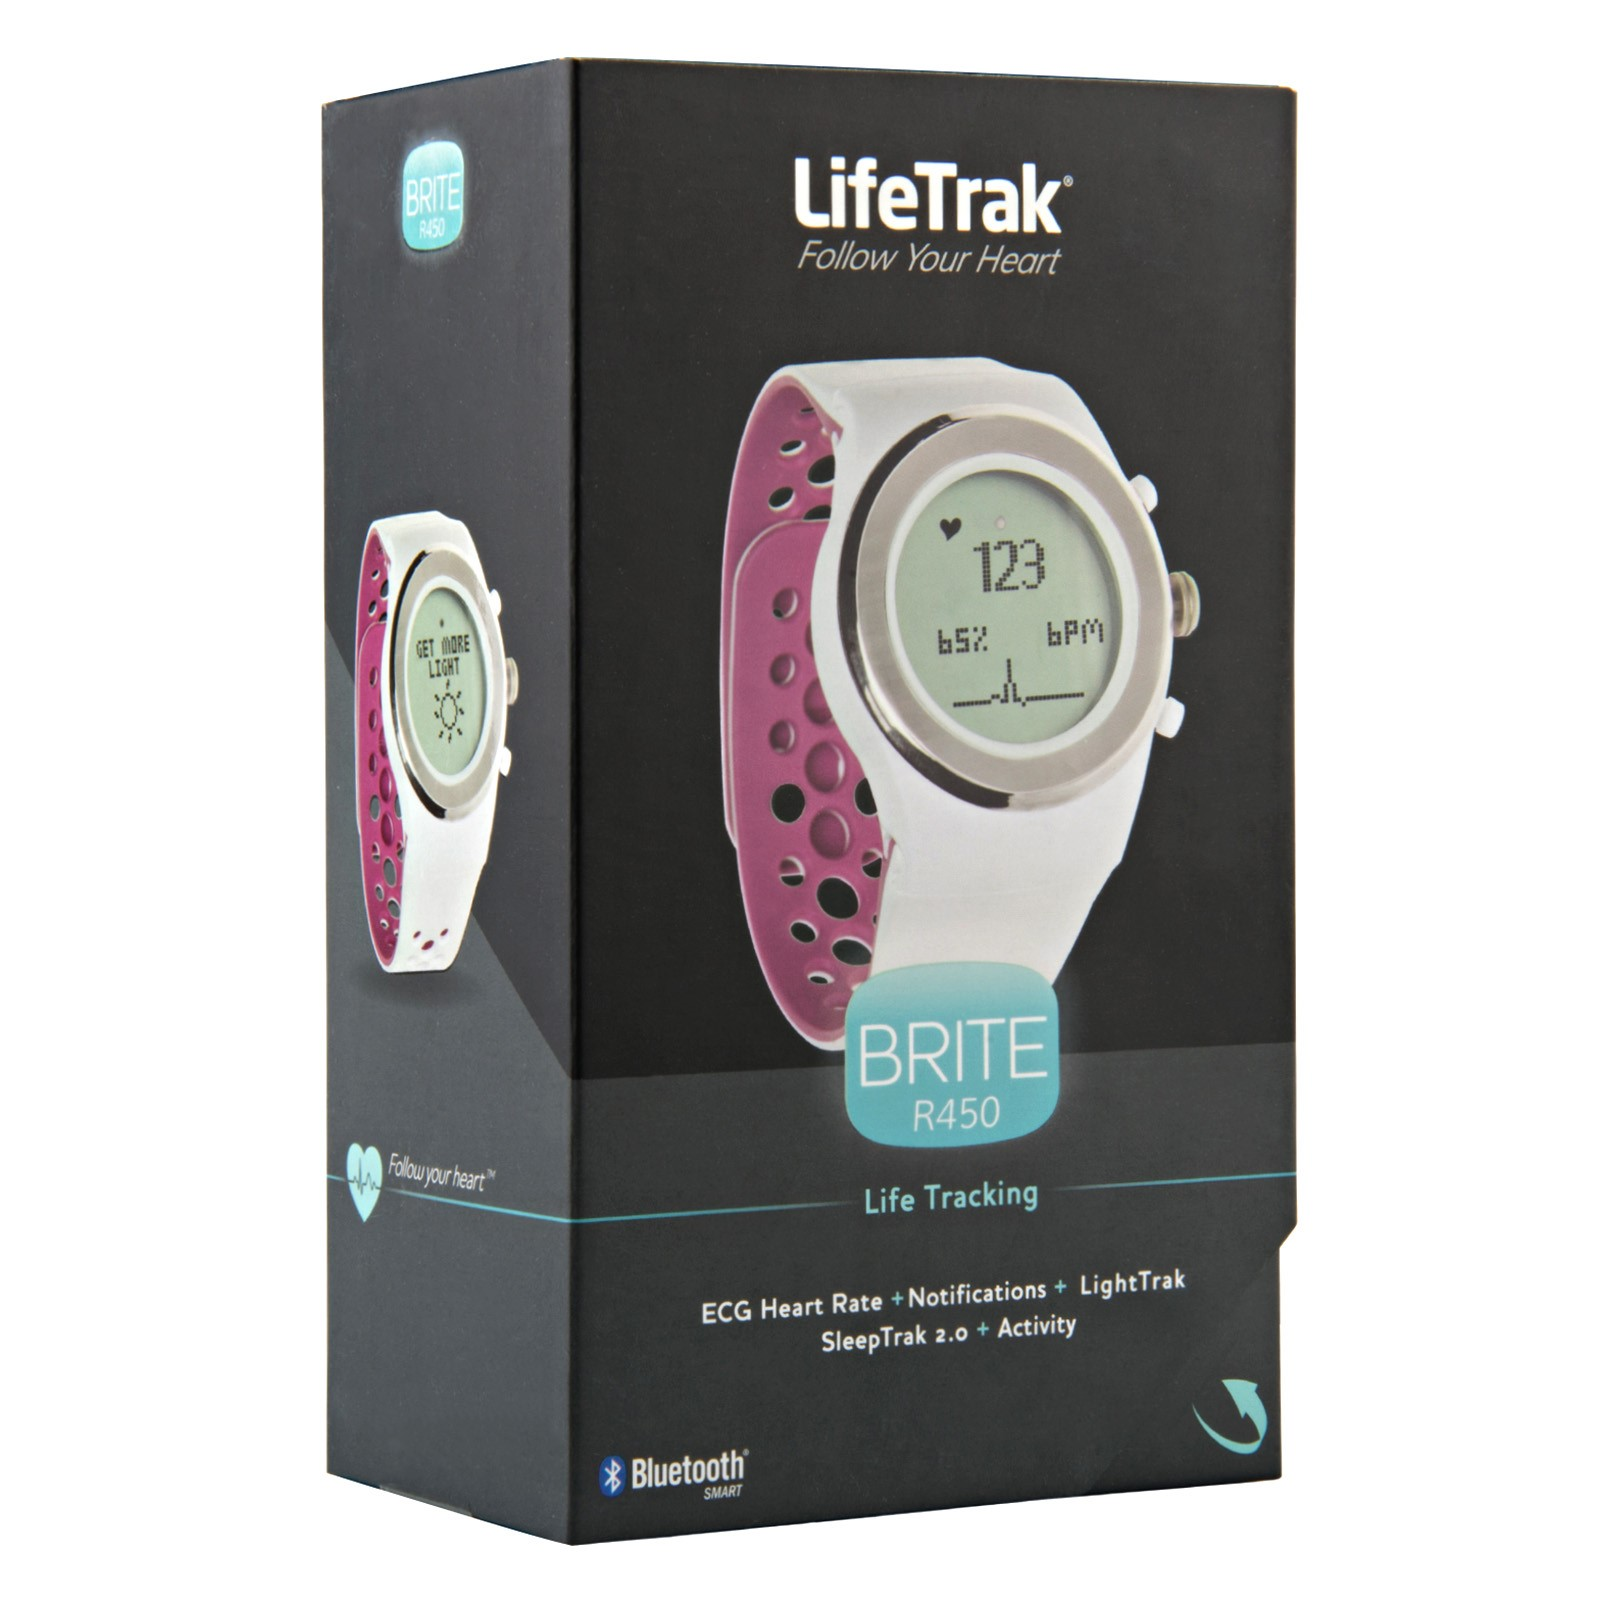 Lifetrak R450 Brite 24 Hour Activity Tracker White Orchid Walmart Com Walmart Com